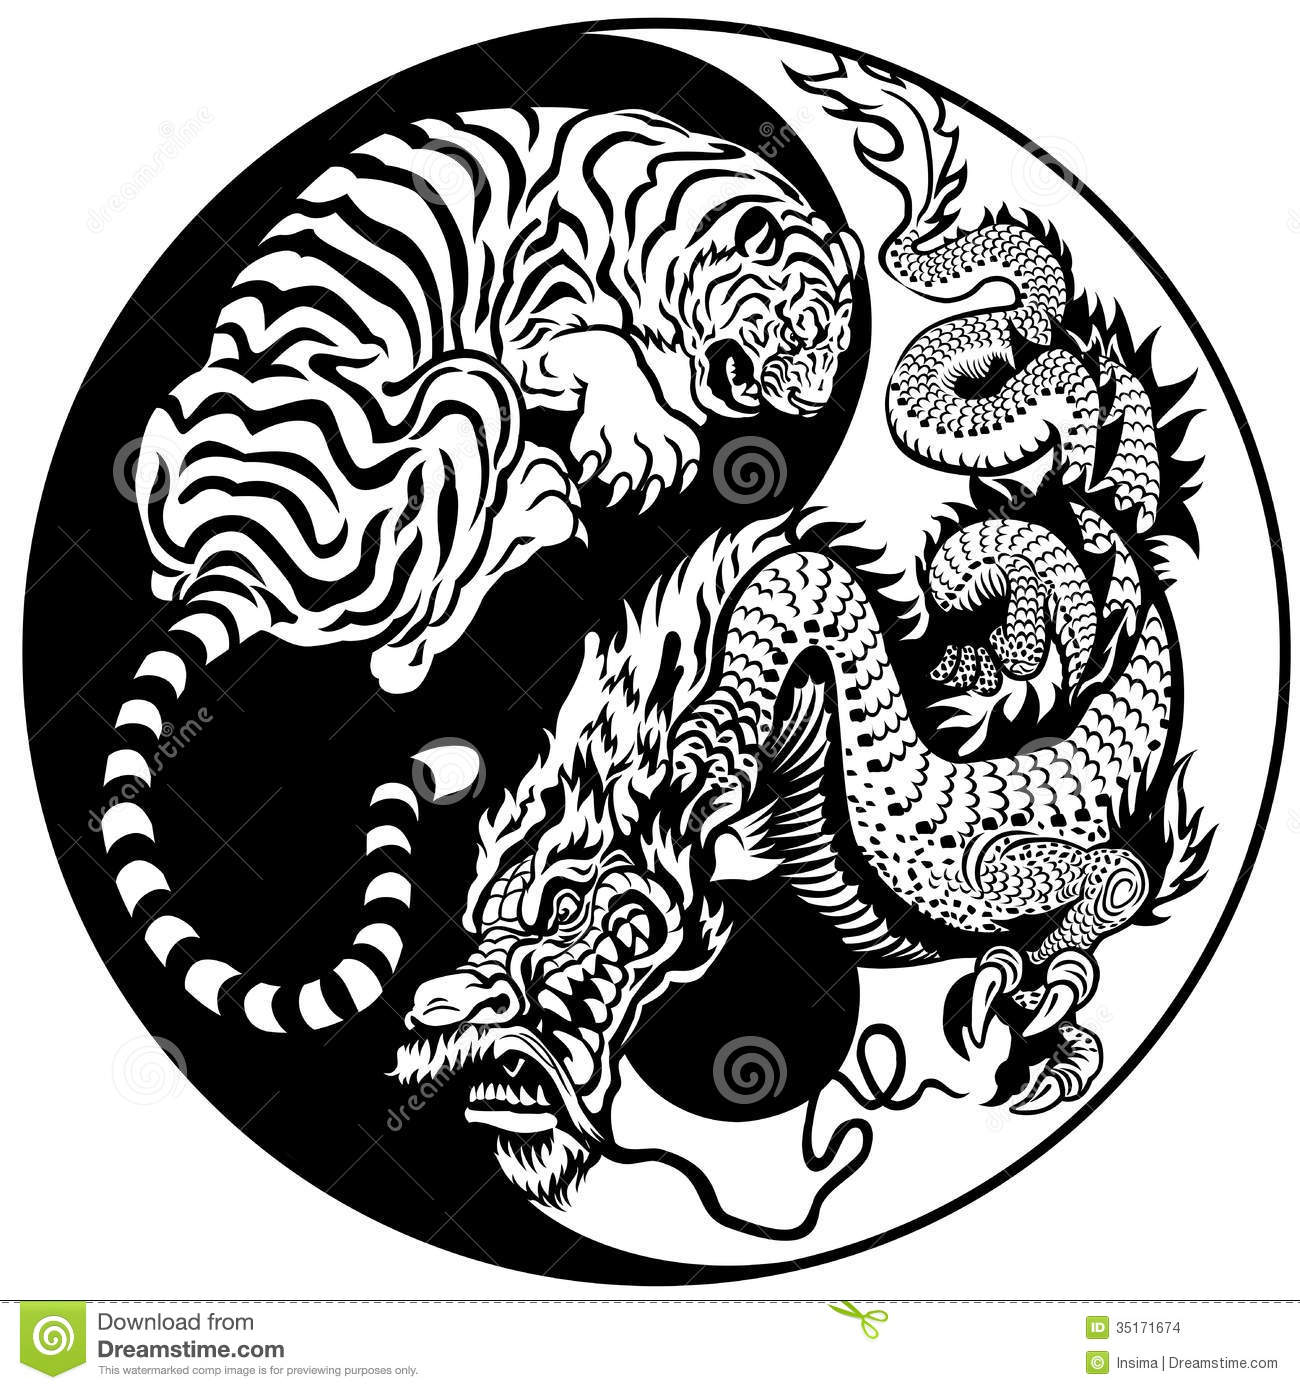 Tiger And Dragon Yin Yang Symbol Stock Vector Illustration Of